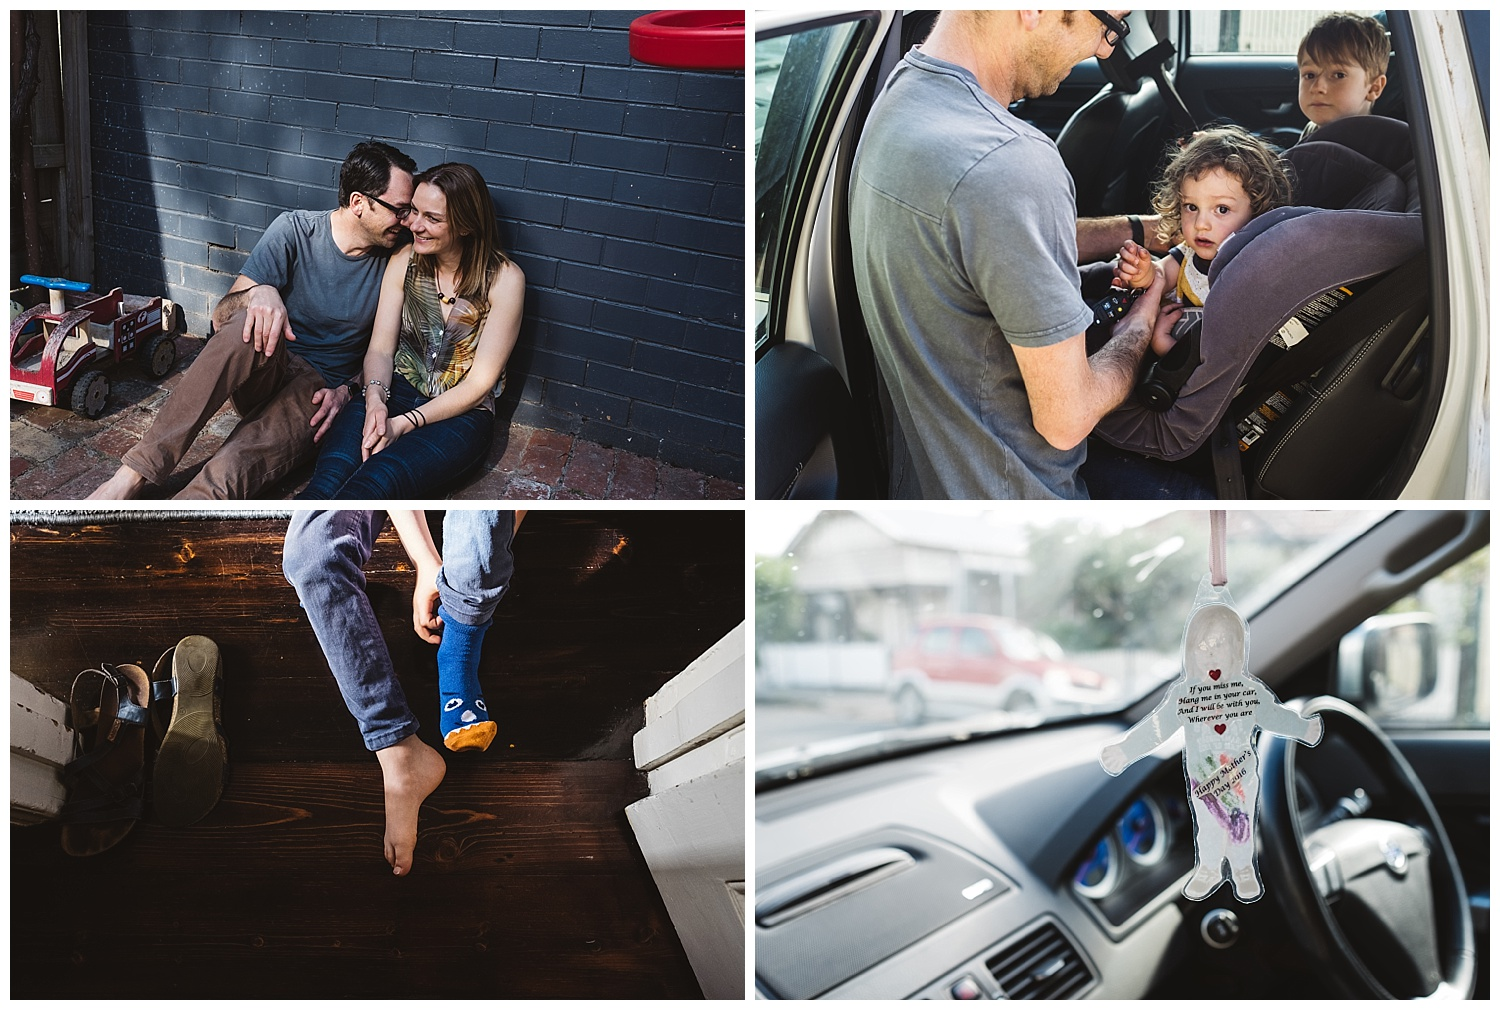 Best family photography in melburne and inner north melbourne, now booking Family lifestyle photography sessions